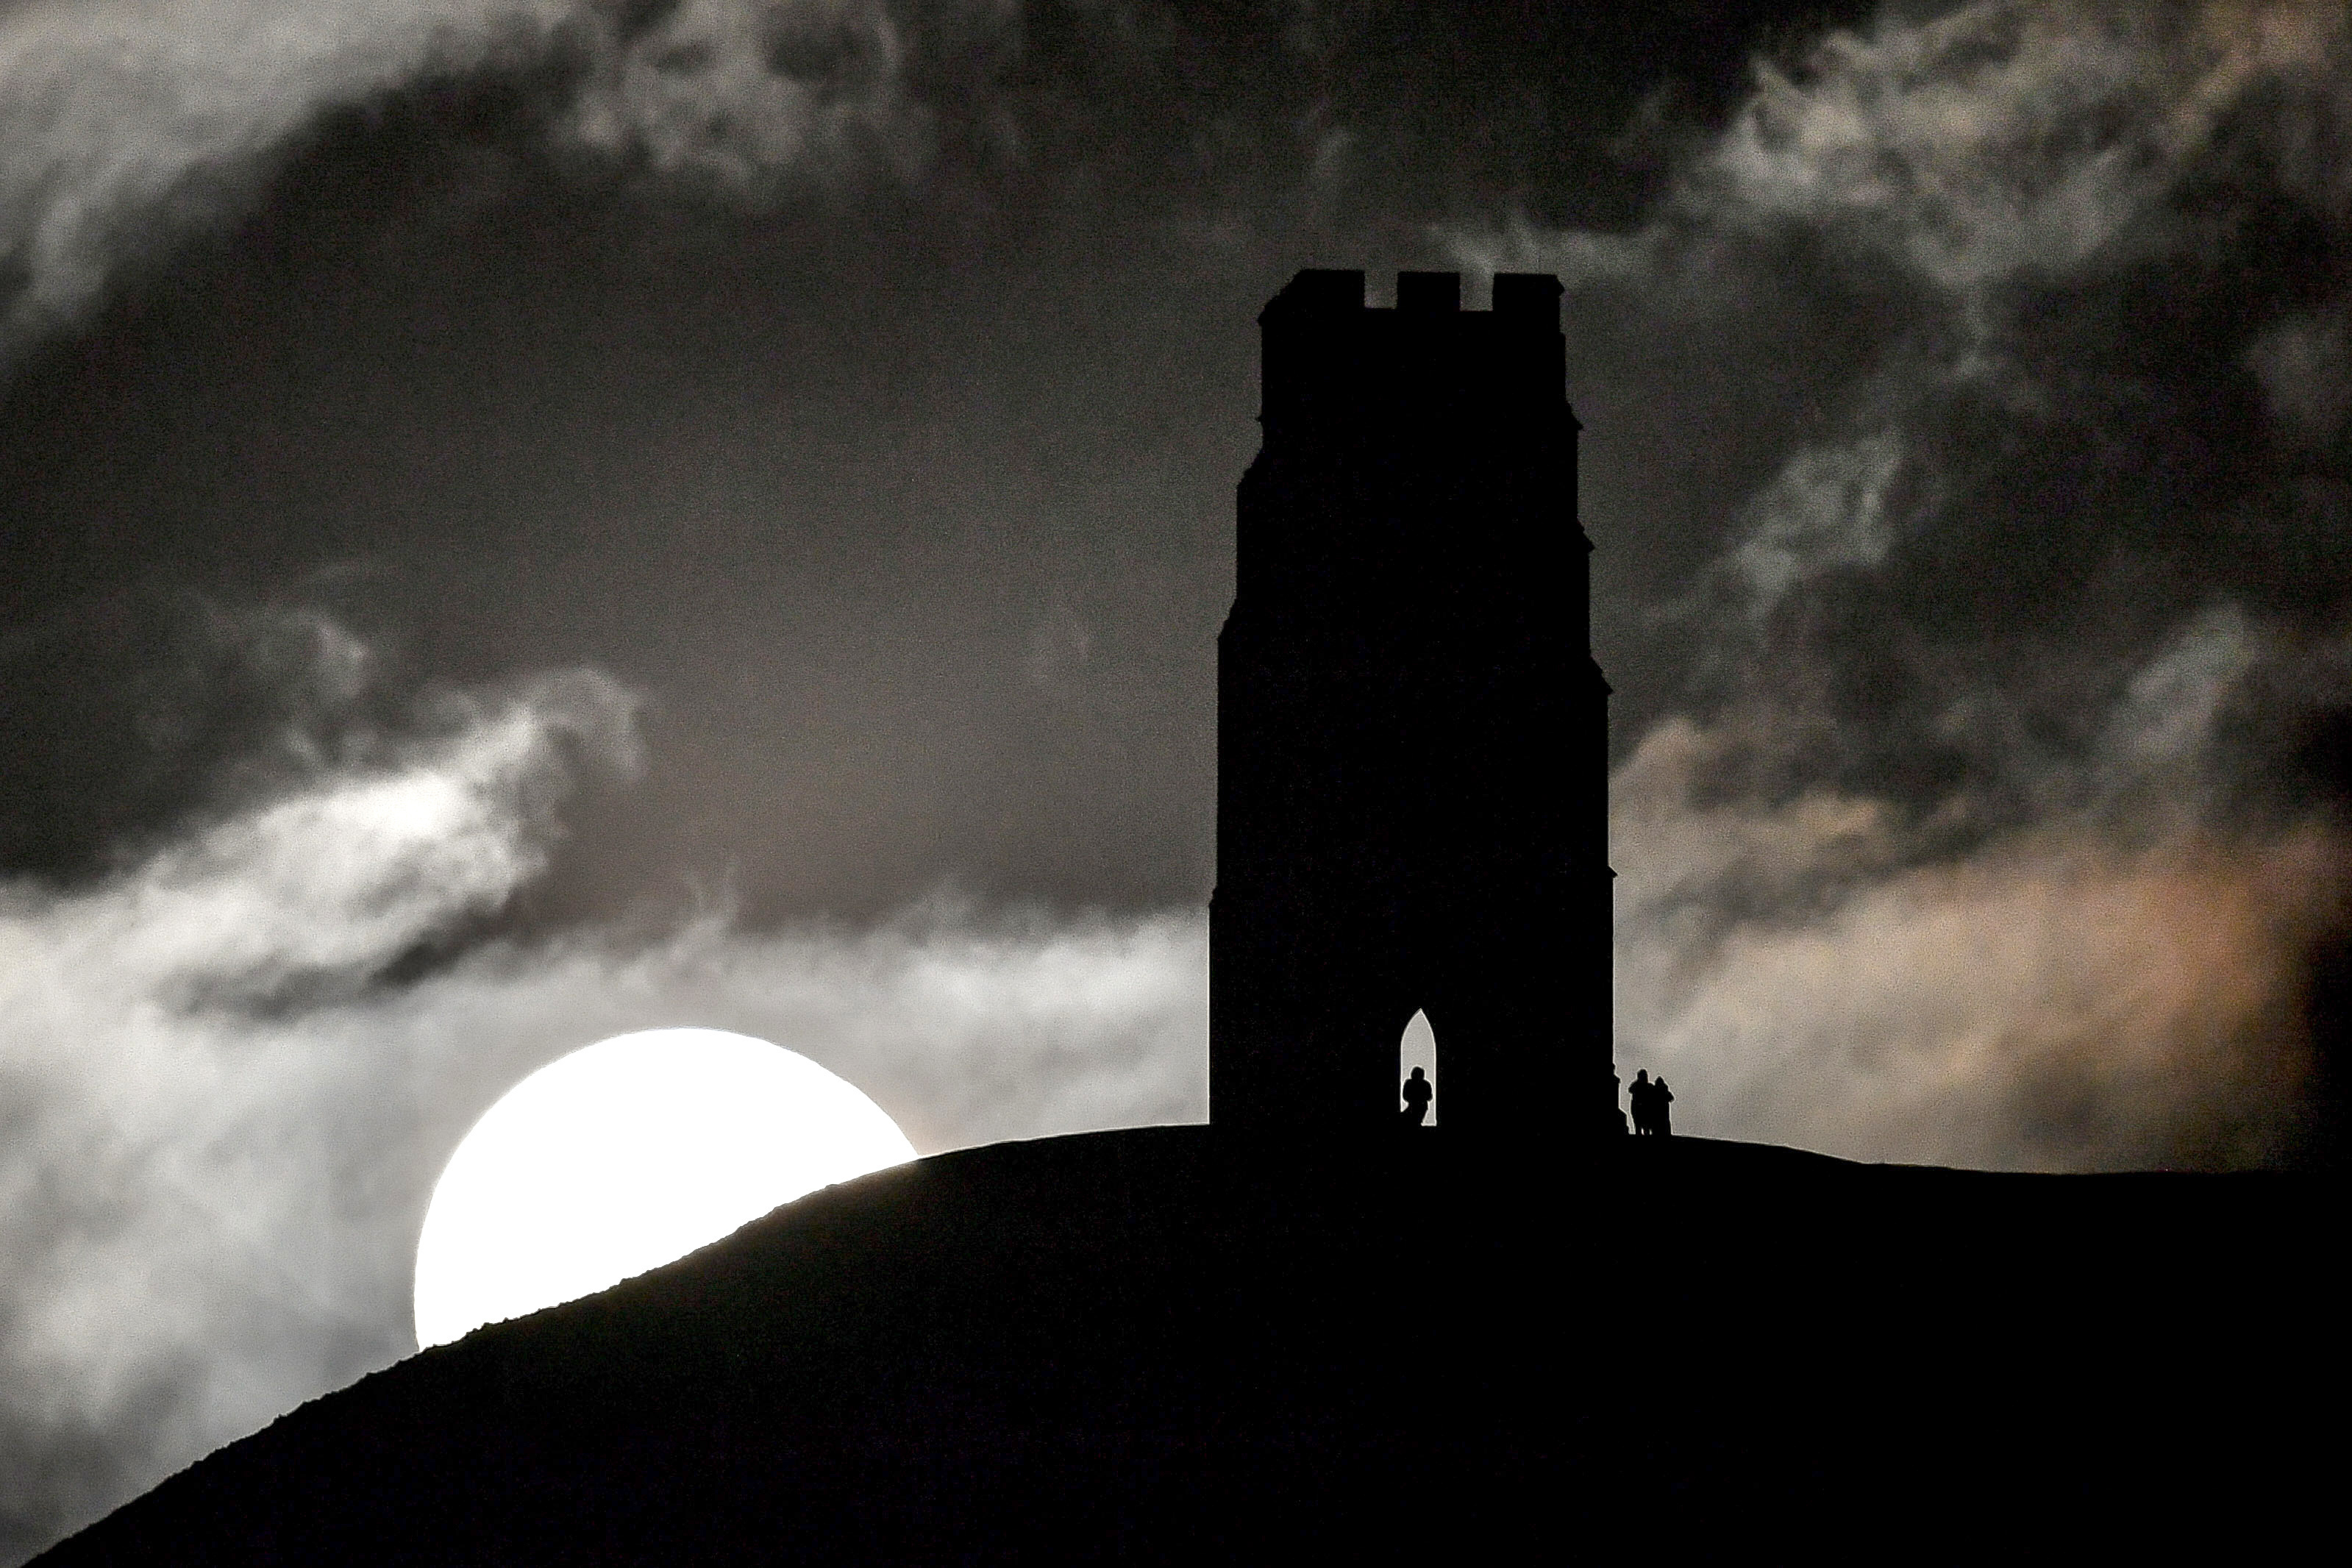 Large white moon rises above the hill Glastonbury Tor sits on